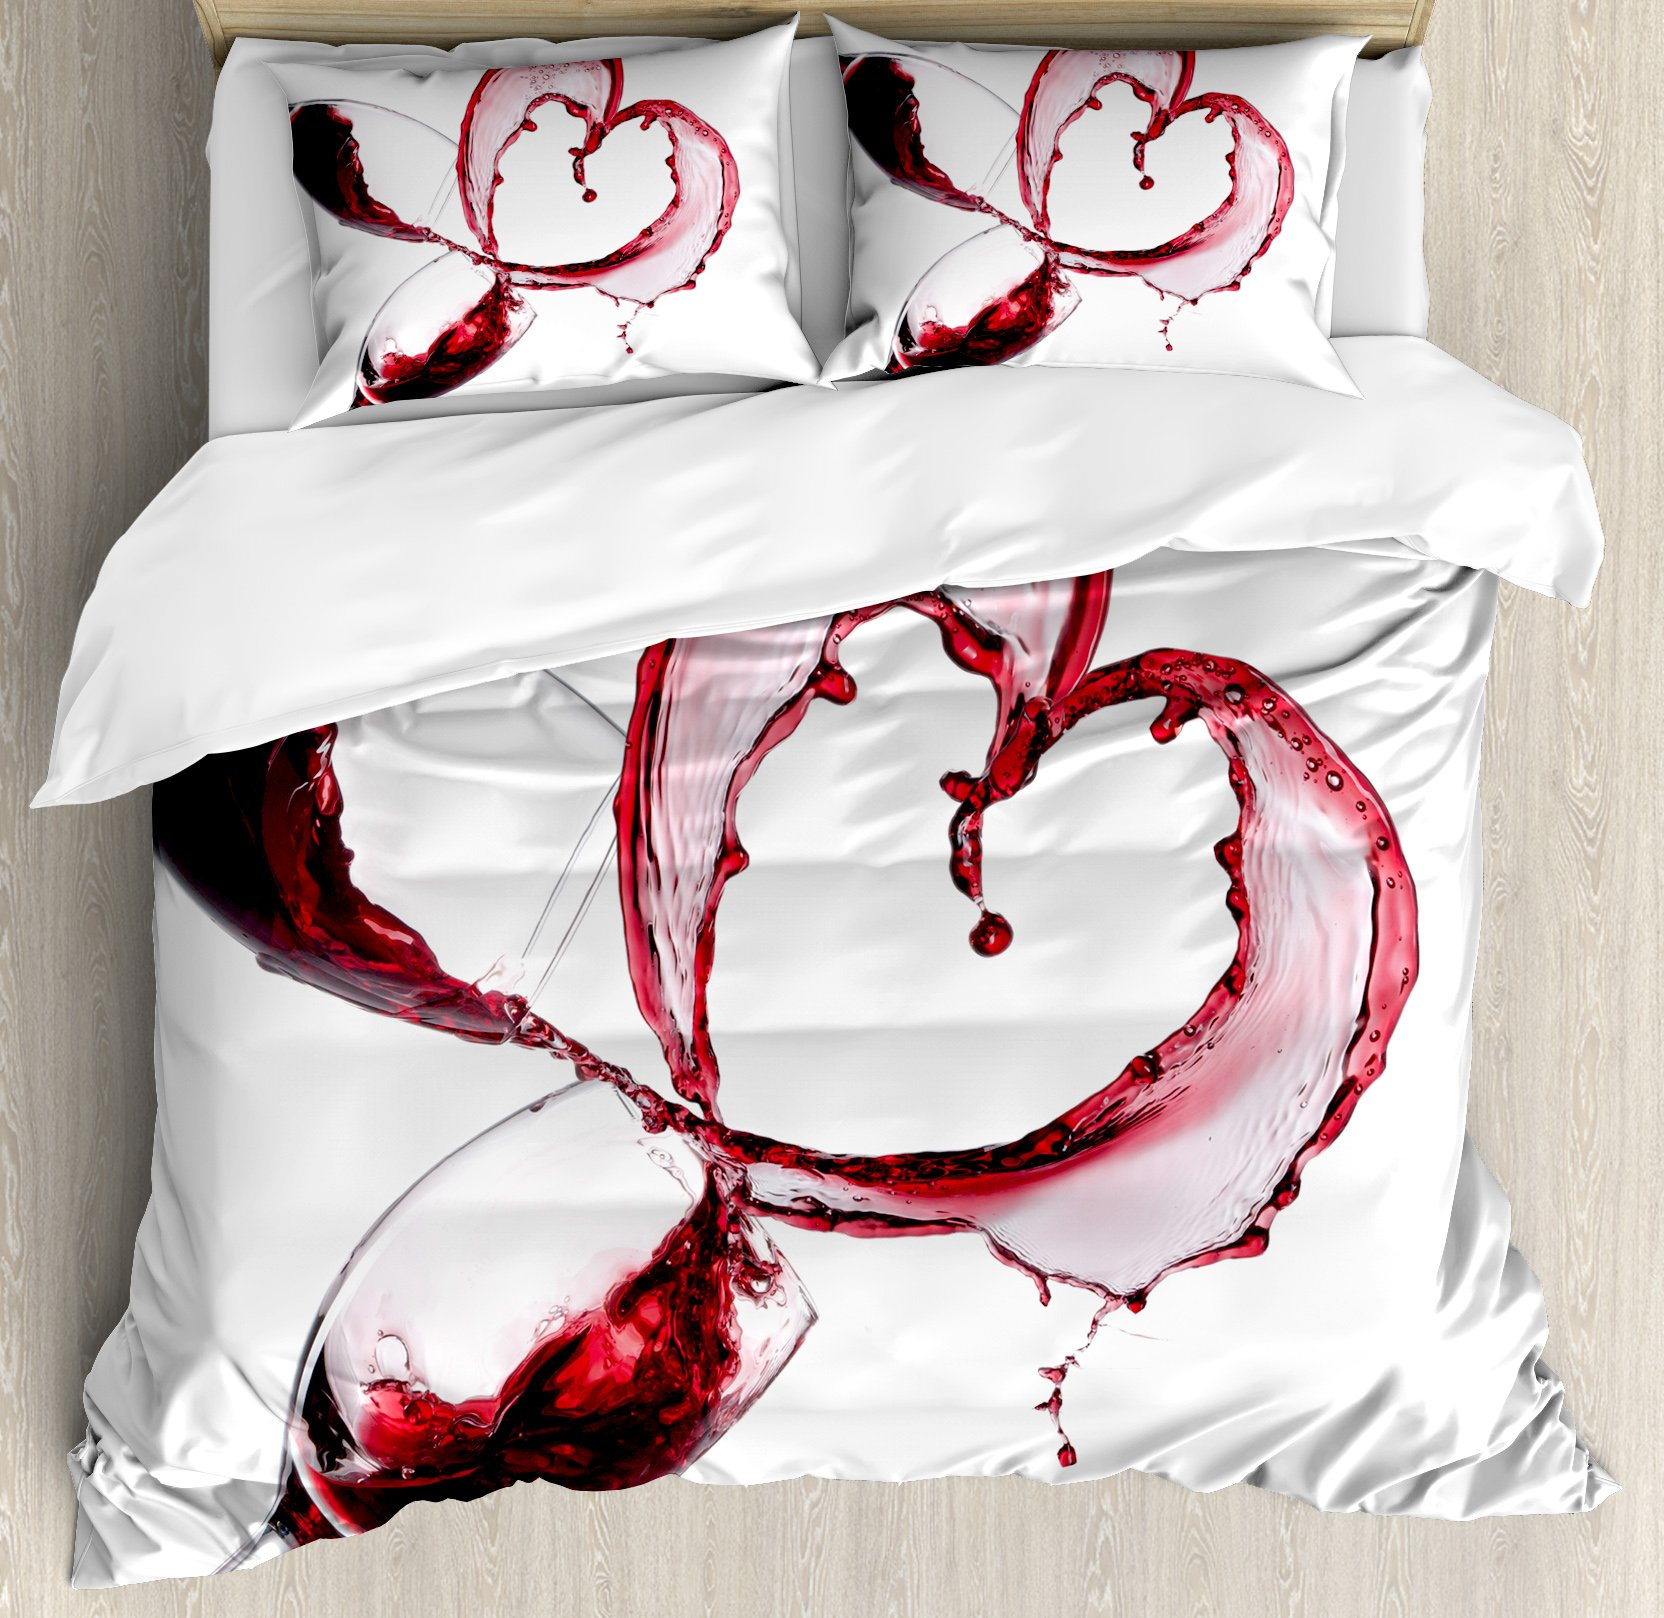 Wine Duvet Cover Set King Size by Ambesonne, Heart Shape with Spilling Red Wine in Glasses Romantic Valentines Day Concept, Decorative 3 Piece Bedding Set with 2 Pillow Shams, Burgundy White Pink